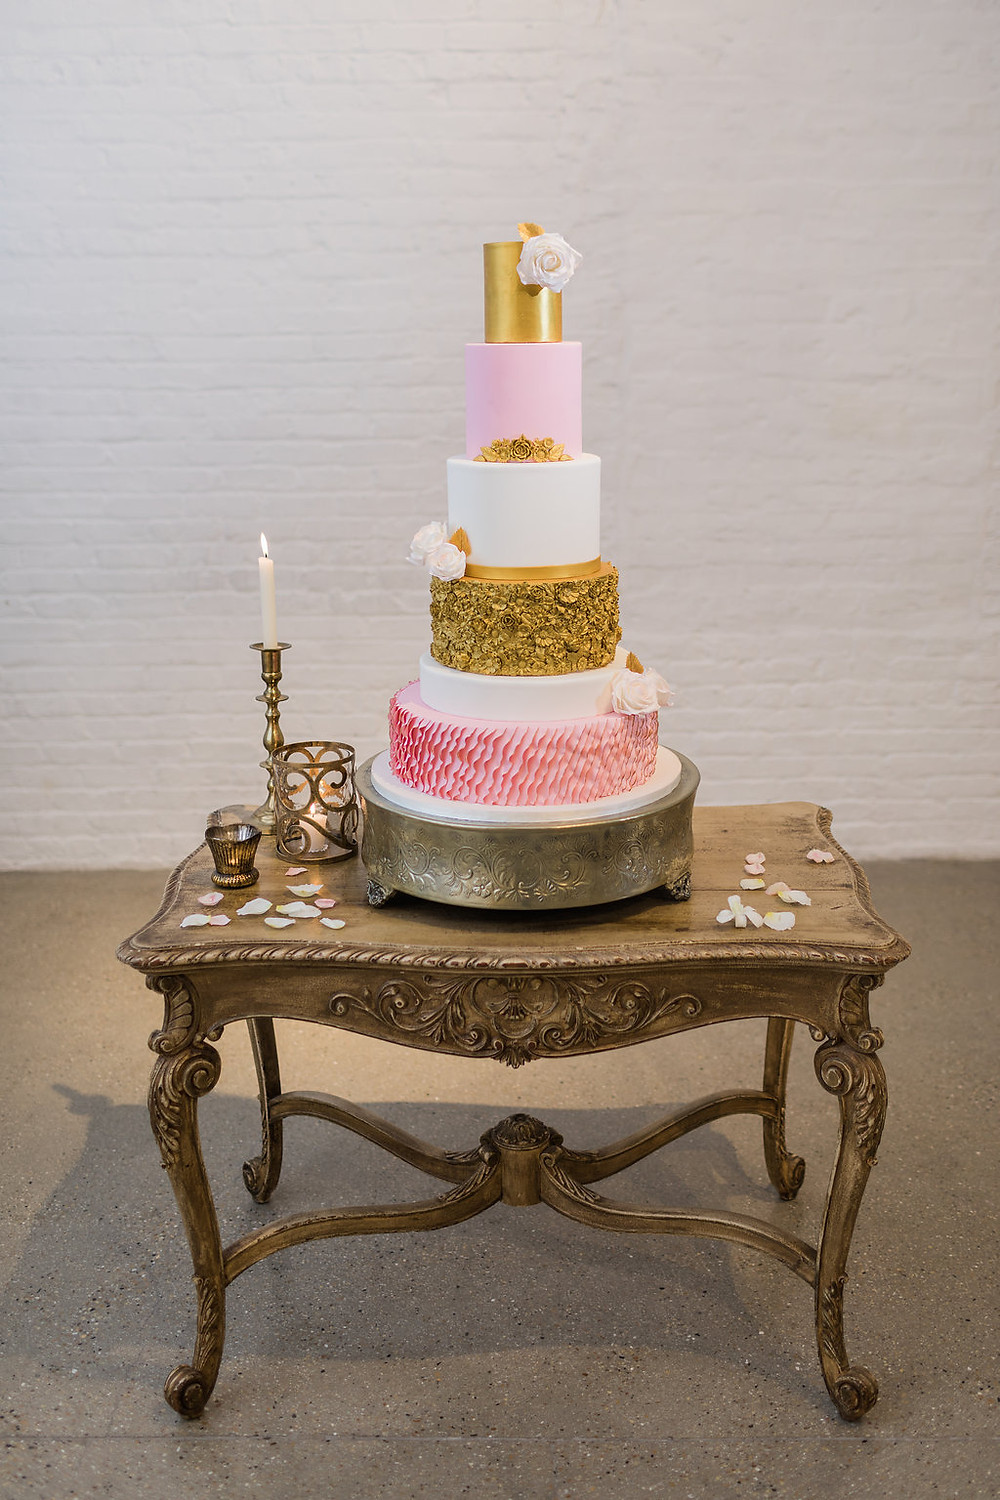 The French table serves as the cake table for this delicate 5 tiered wedding cake, accented with brass candleholders.